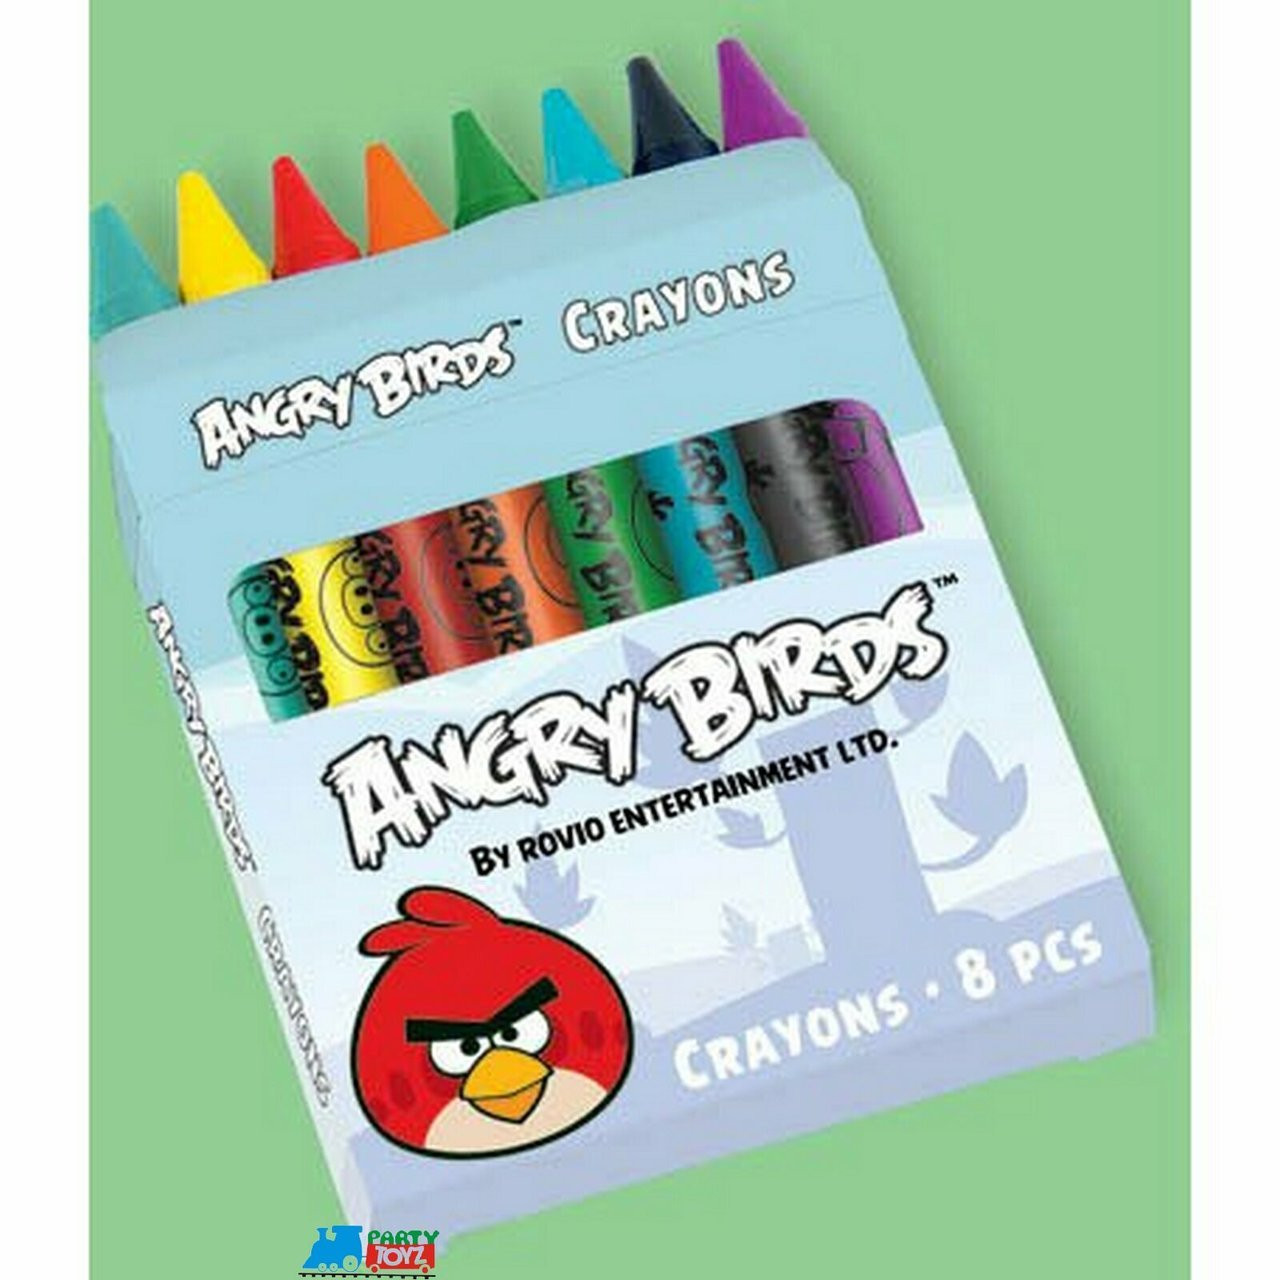 12X Angry Birds Crayons Favors for Parties  (12 Packs of 8 crayons each)